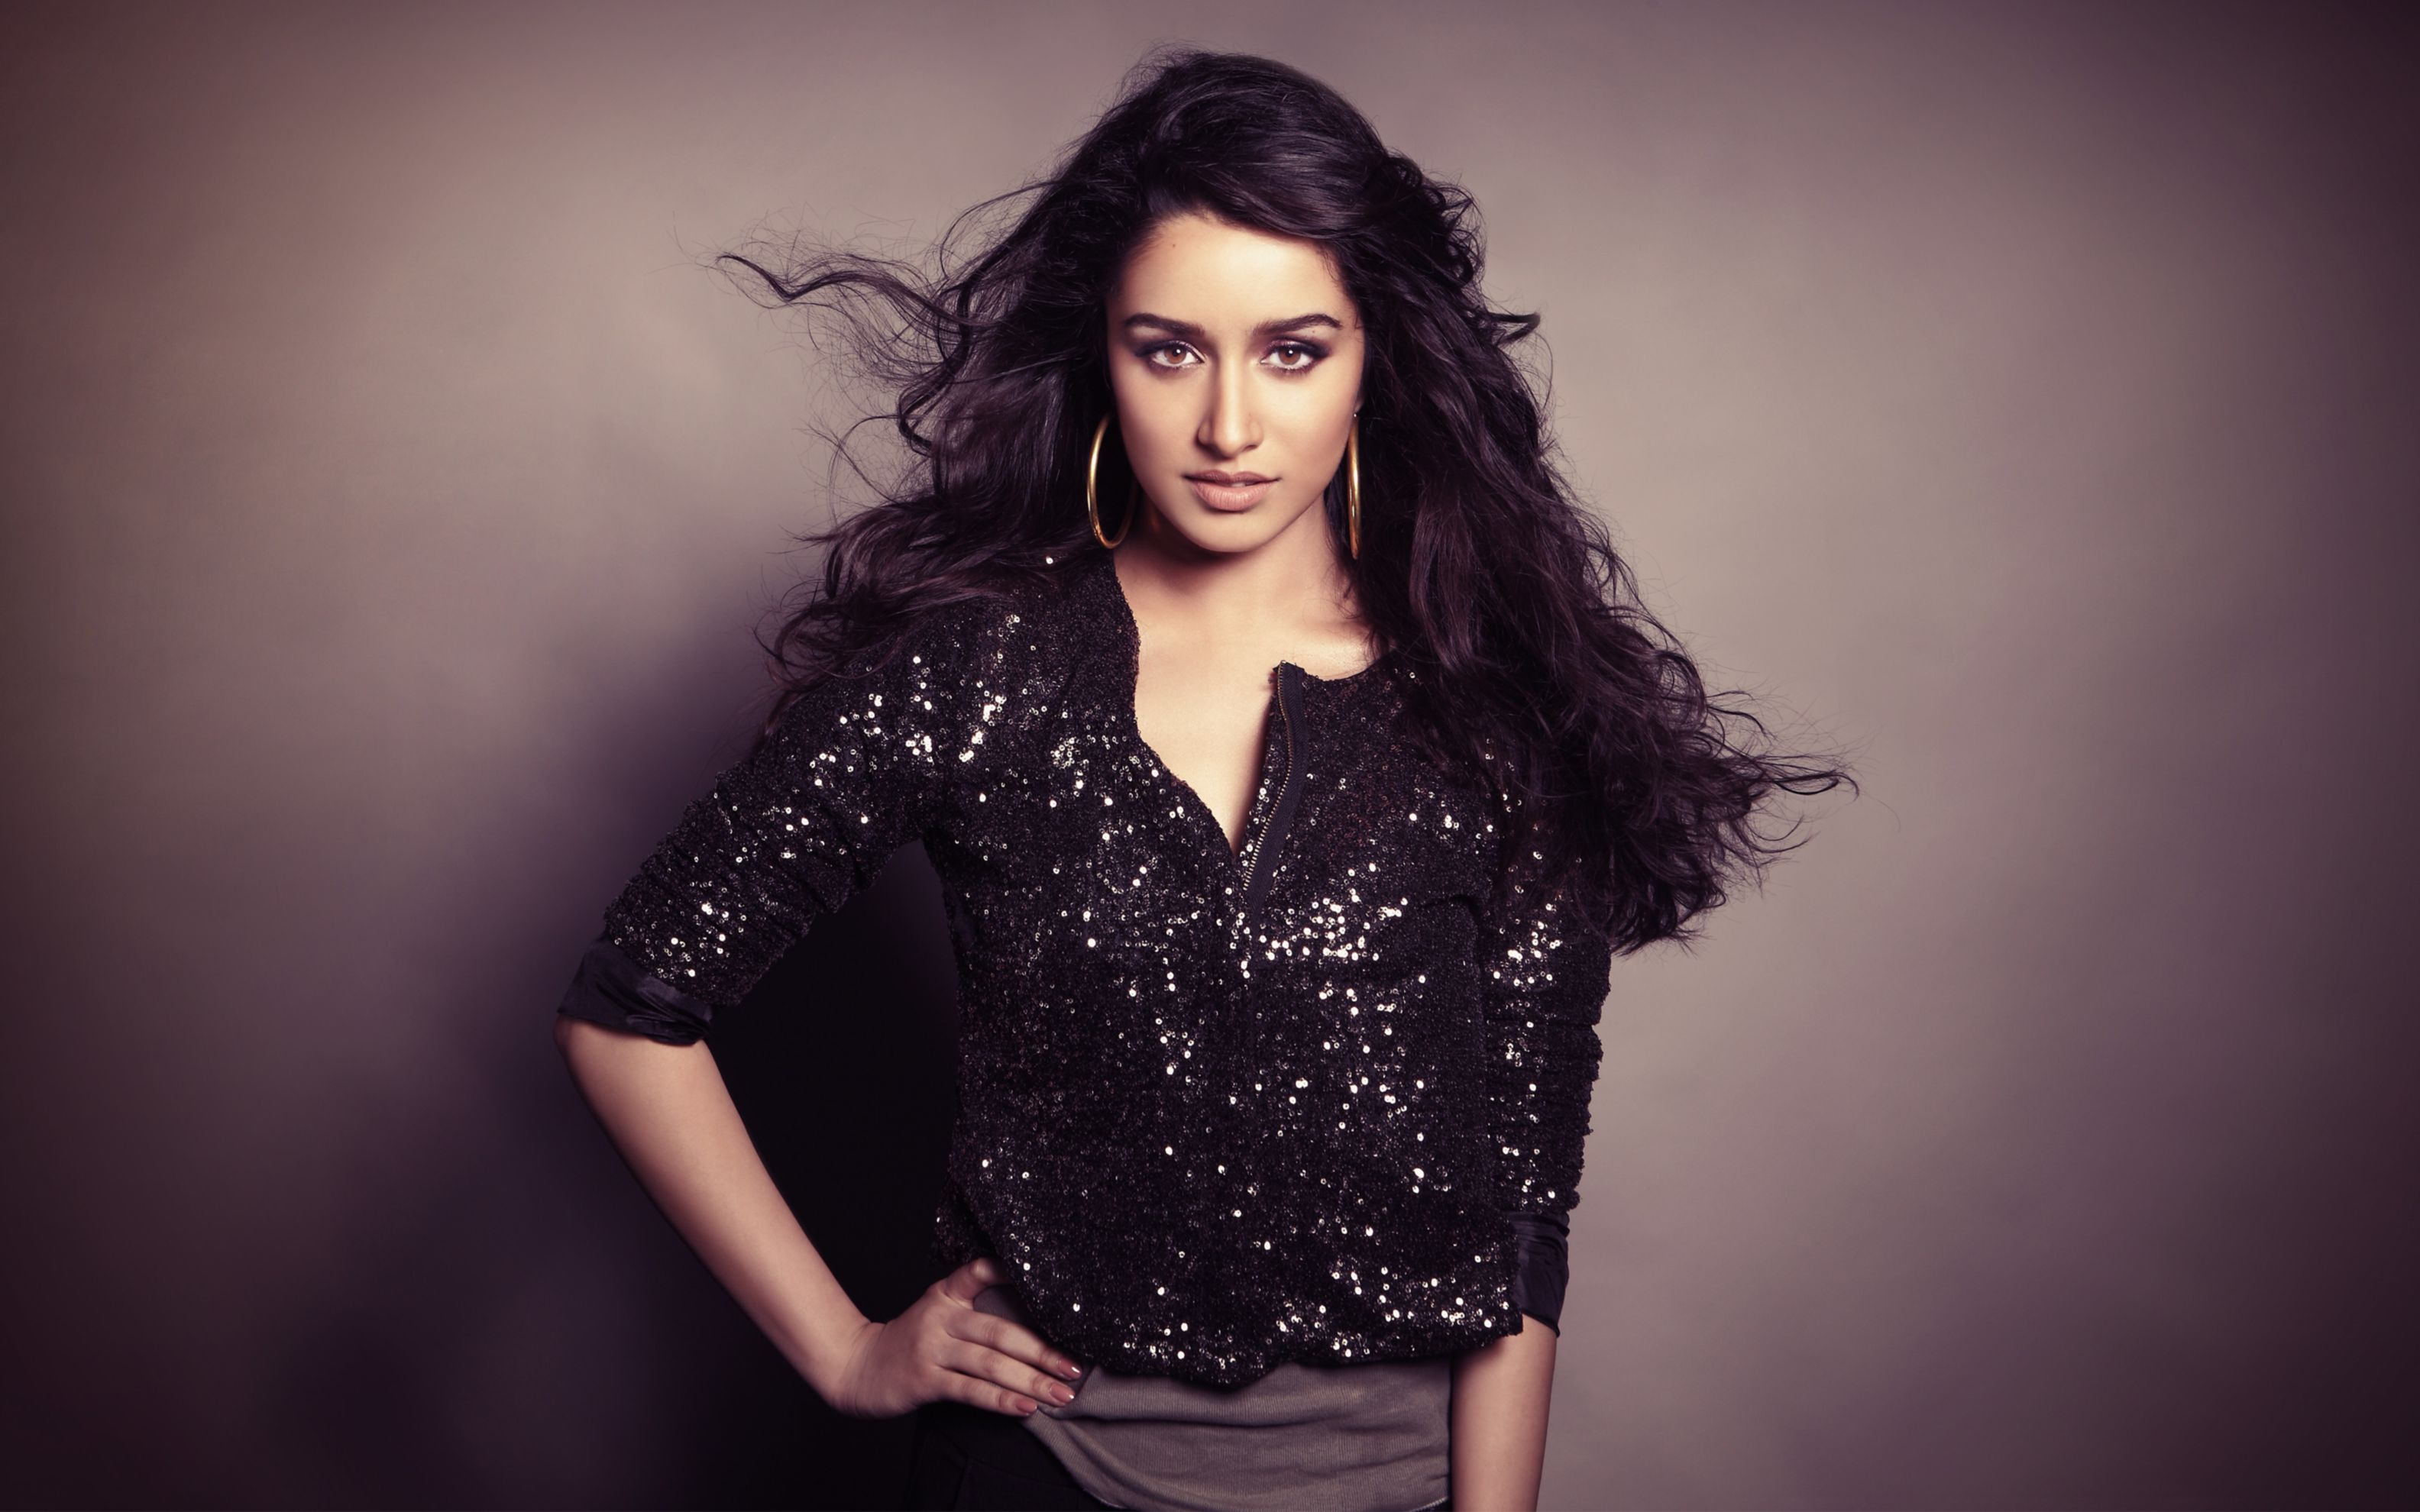 Download free HD Actress Shraddha Kapoor Wide Wallpaper, image